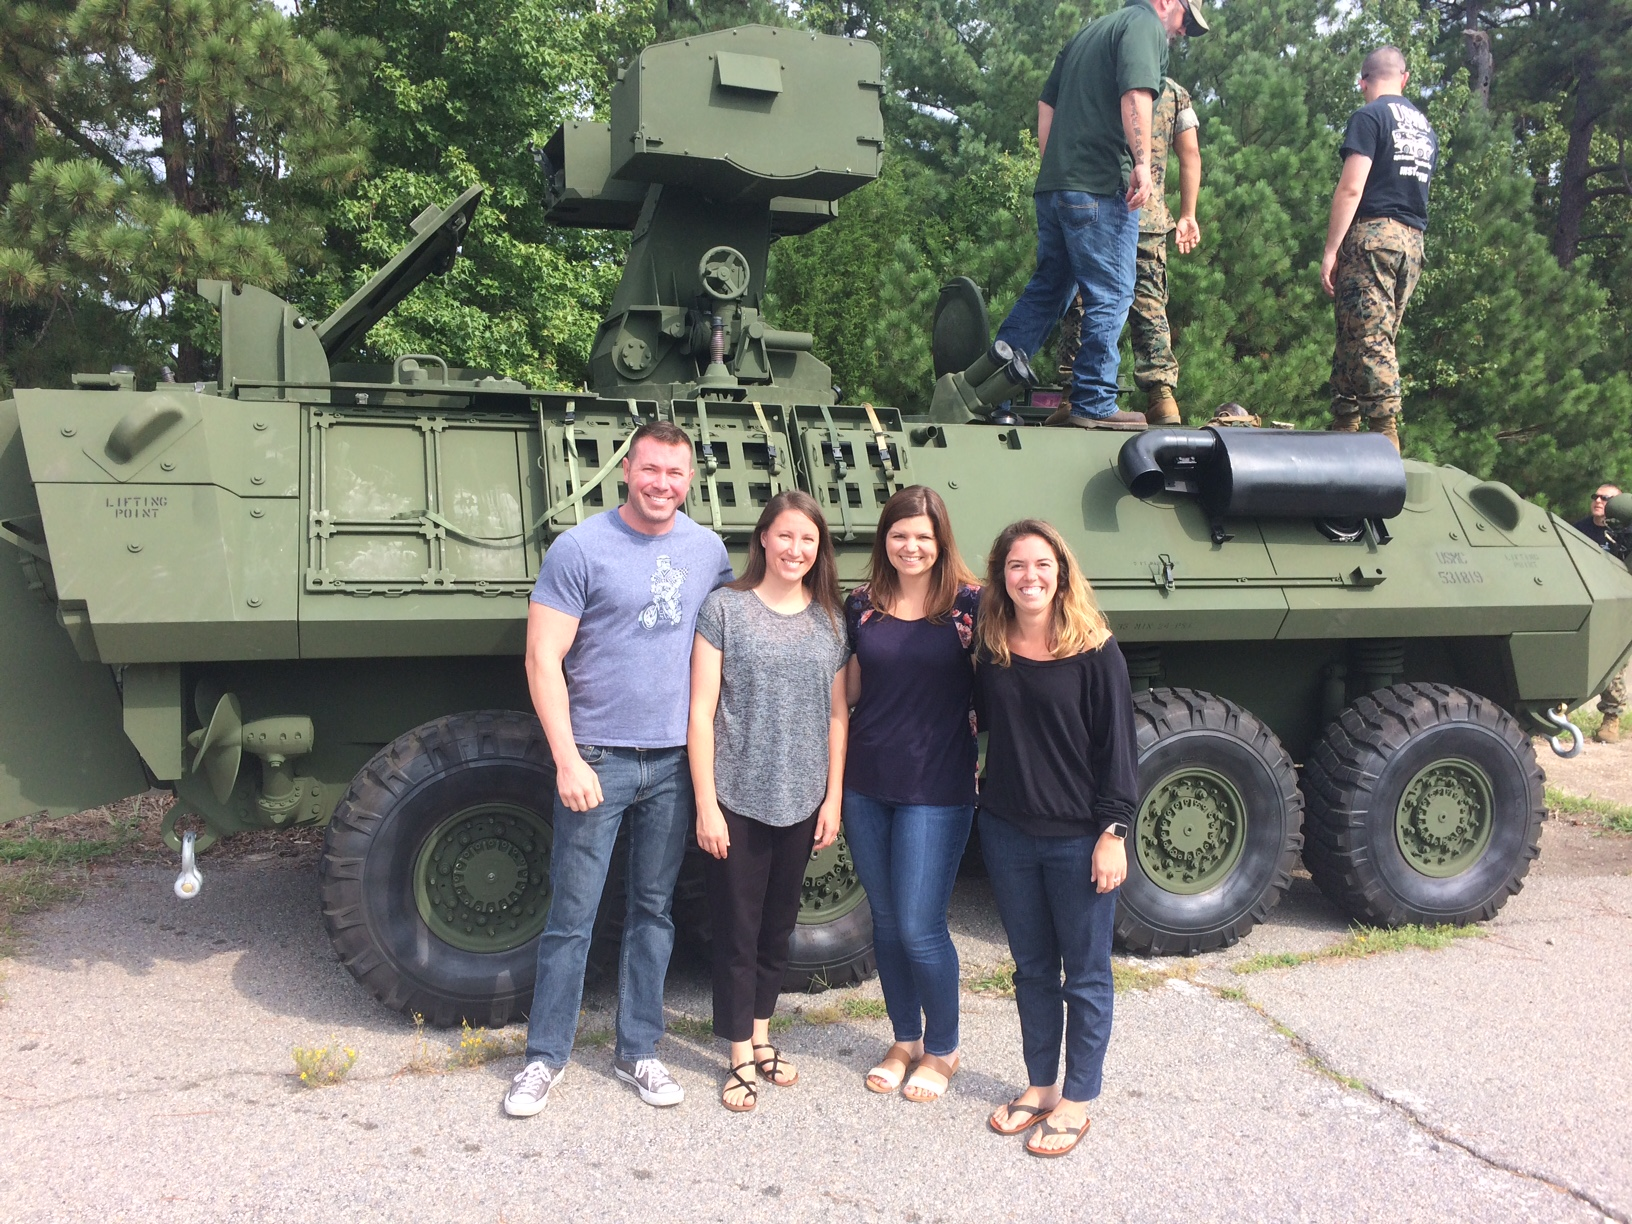 Staff Sgt. Michael Early, contract specialist; Emily Wood, purchasing agent; Rowley; and Xanthe Otterstedt, contracting officer; pose in front of a Marine tank for which they helped purchase training simulators. Photo by Paul Kopjoe, Marine Corps Program Manager for Light Armored Vehicles